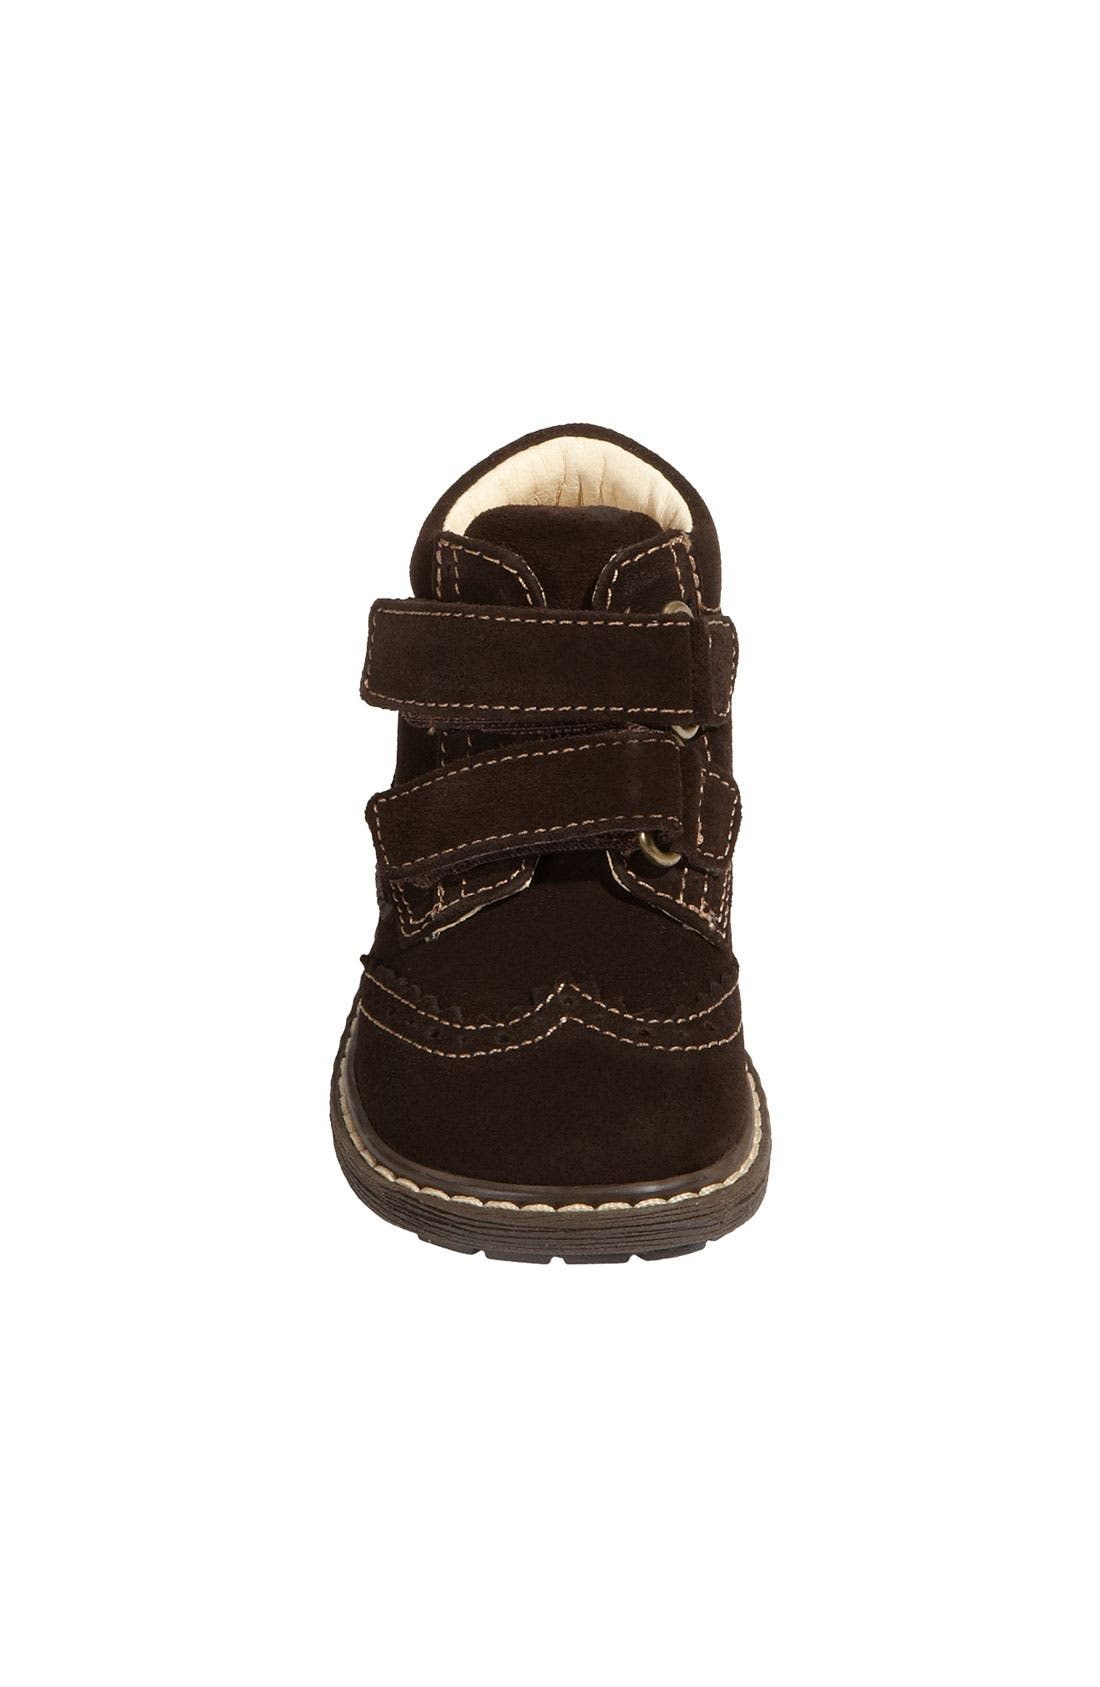 Alternate Image 3  - Primigi 'Romuald' Boot (Walker & Toddler)